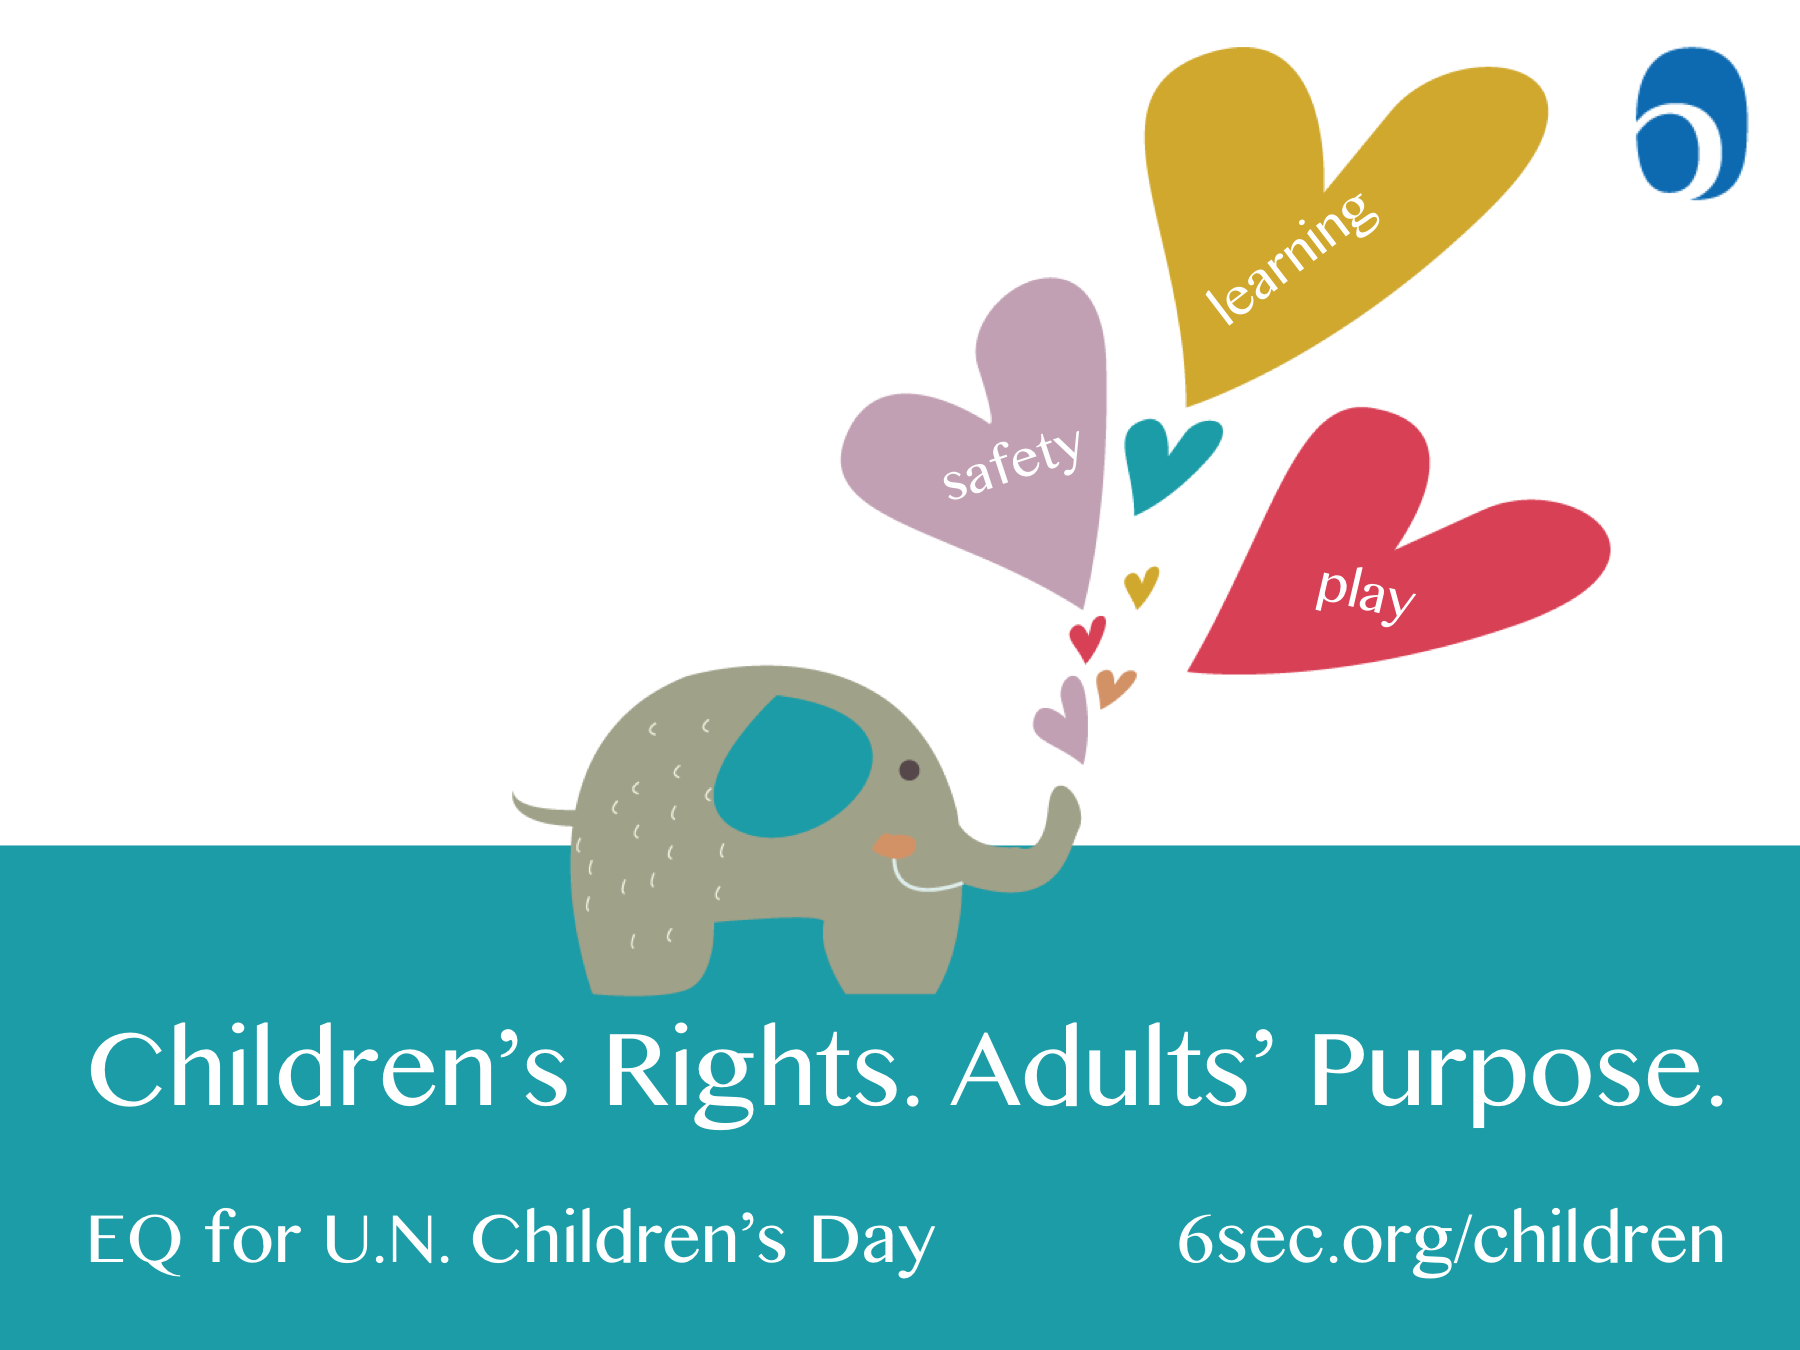 childrens rights What are children's rights the institution of children's rights is the system of benefits, freedoms, and privileges that are afforded to children within the scope of a society.